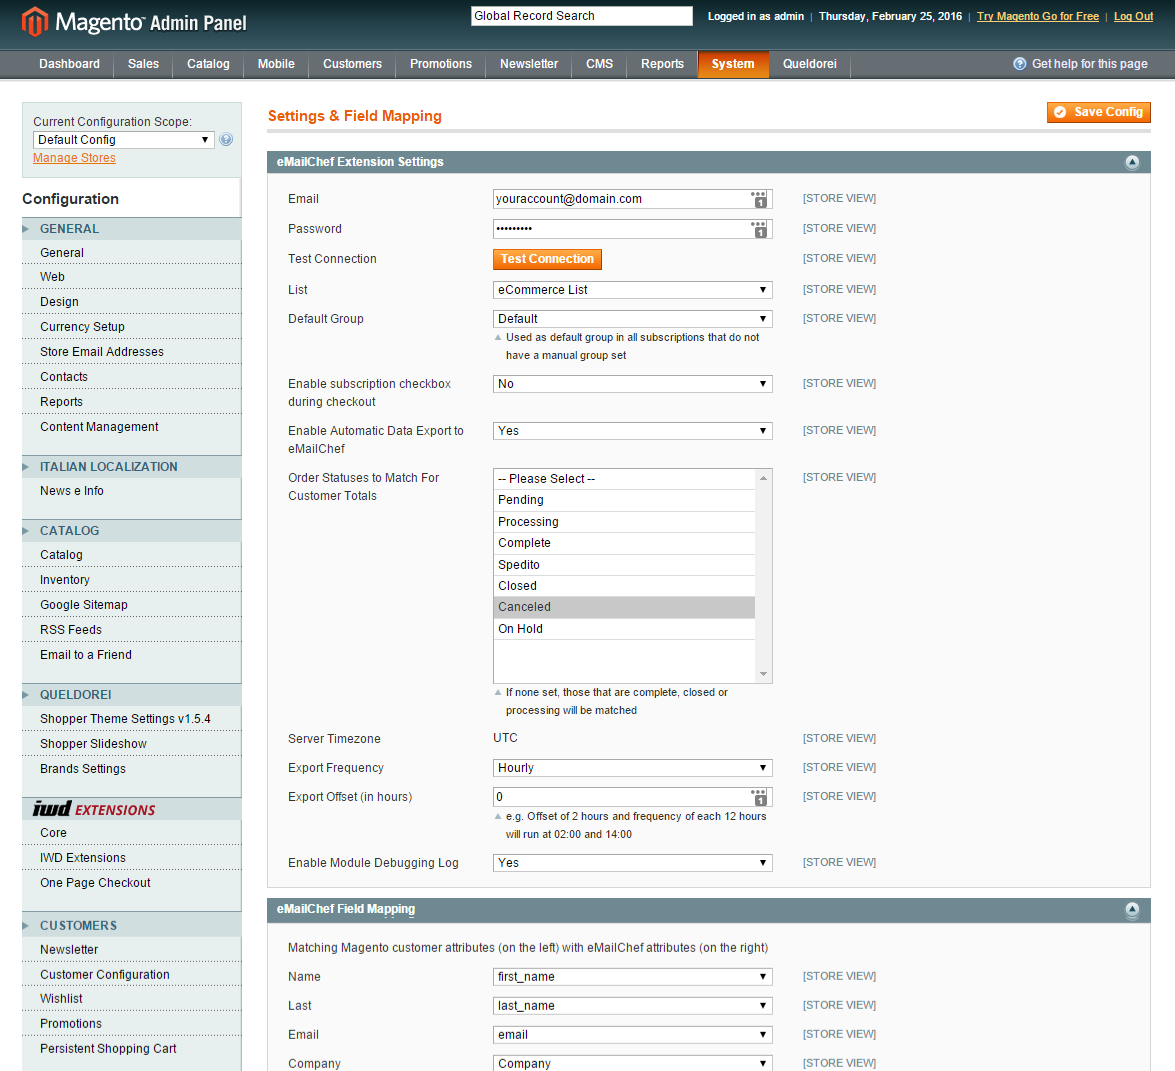 Email marketing with Magento and eMailChef - eMailChef